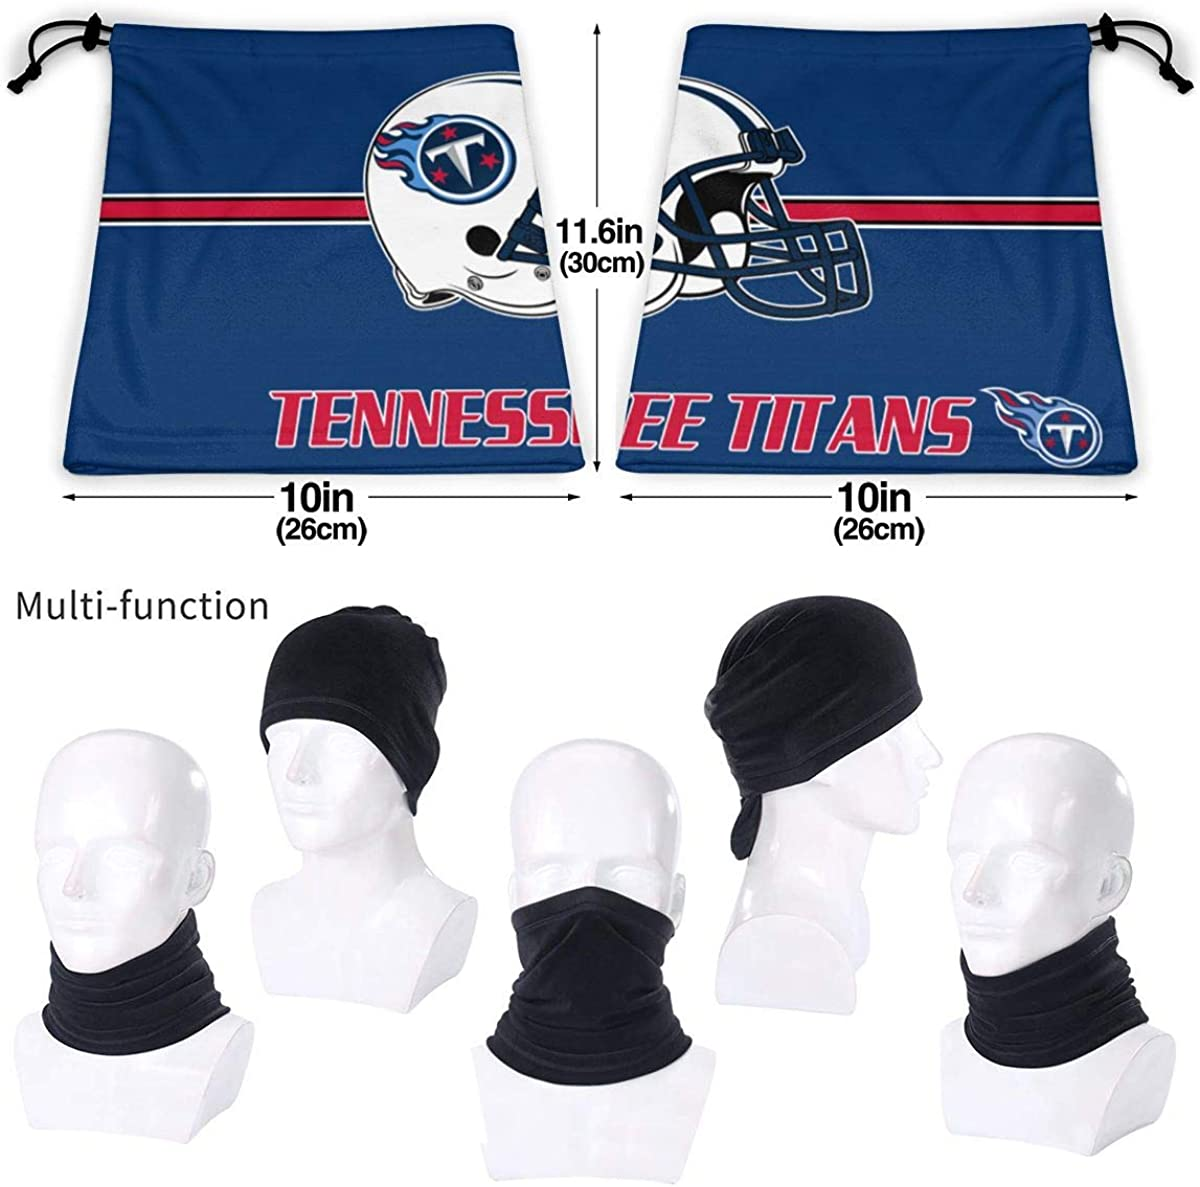 Tennessee Titans Wicking Headbands Outdoor Headwear Bandana Sports Scarf Tube Uv Face for Workout Yoga